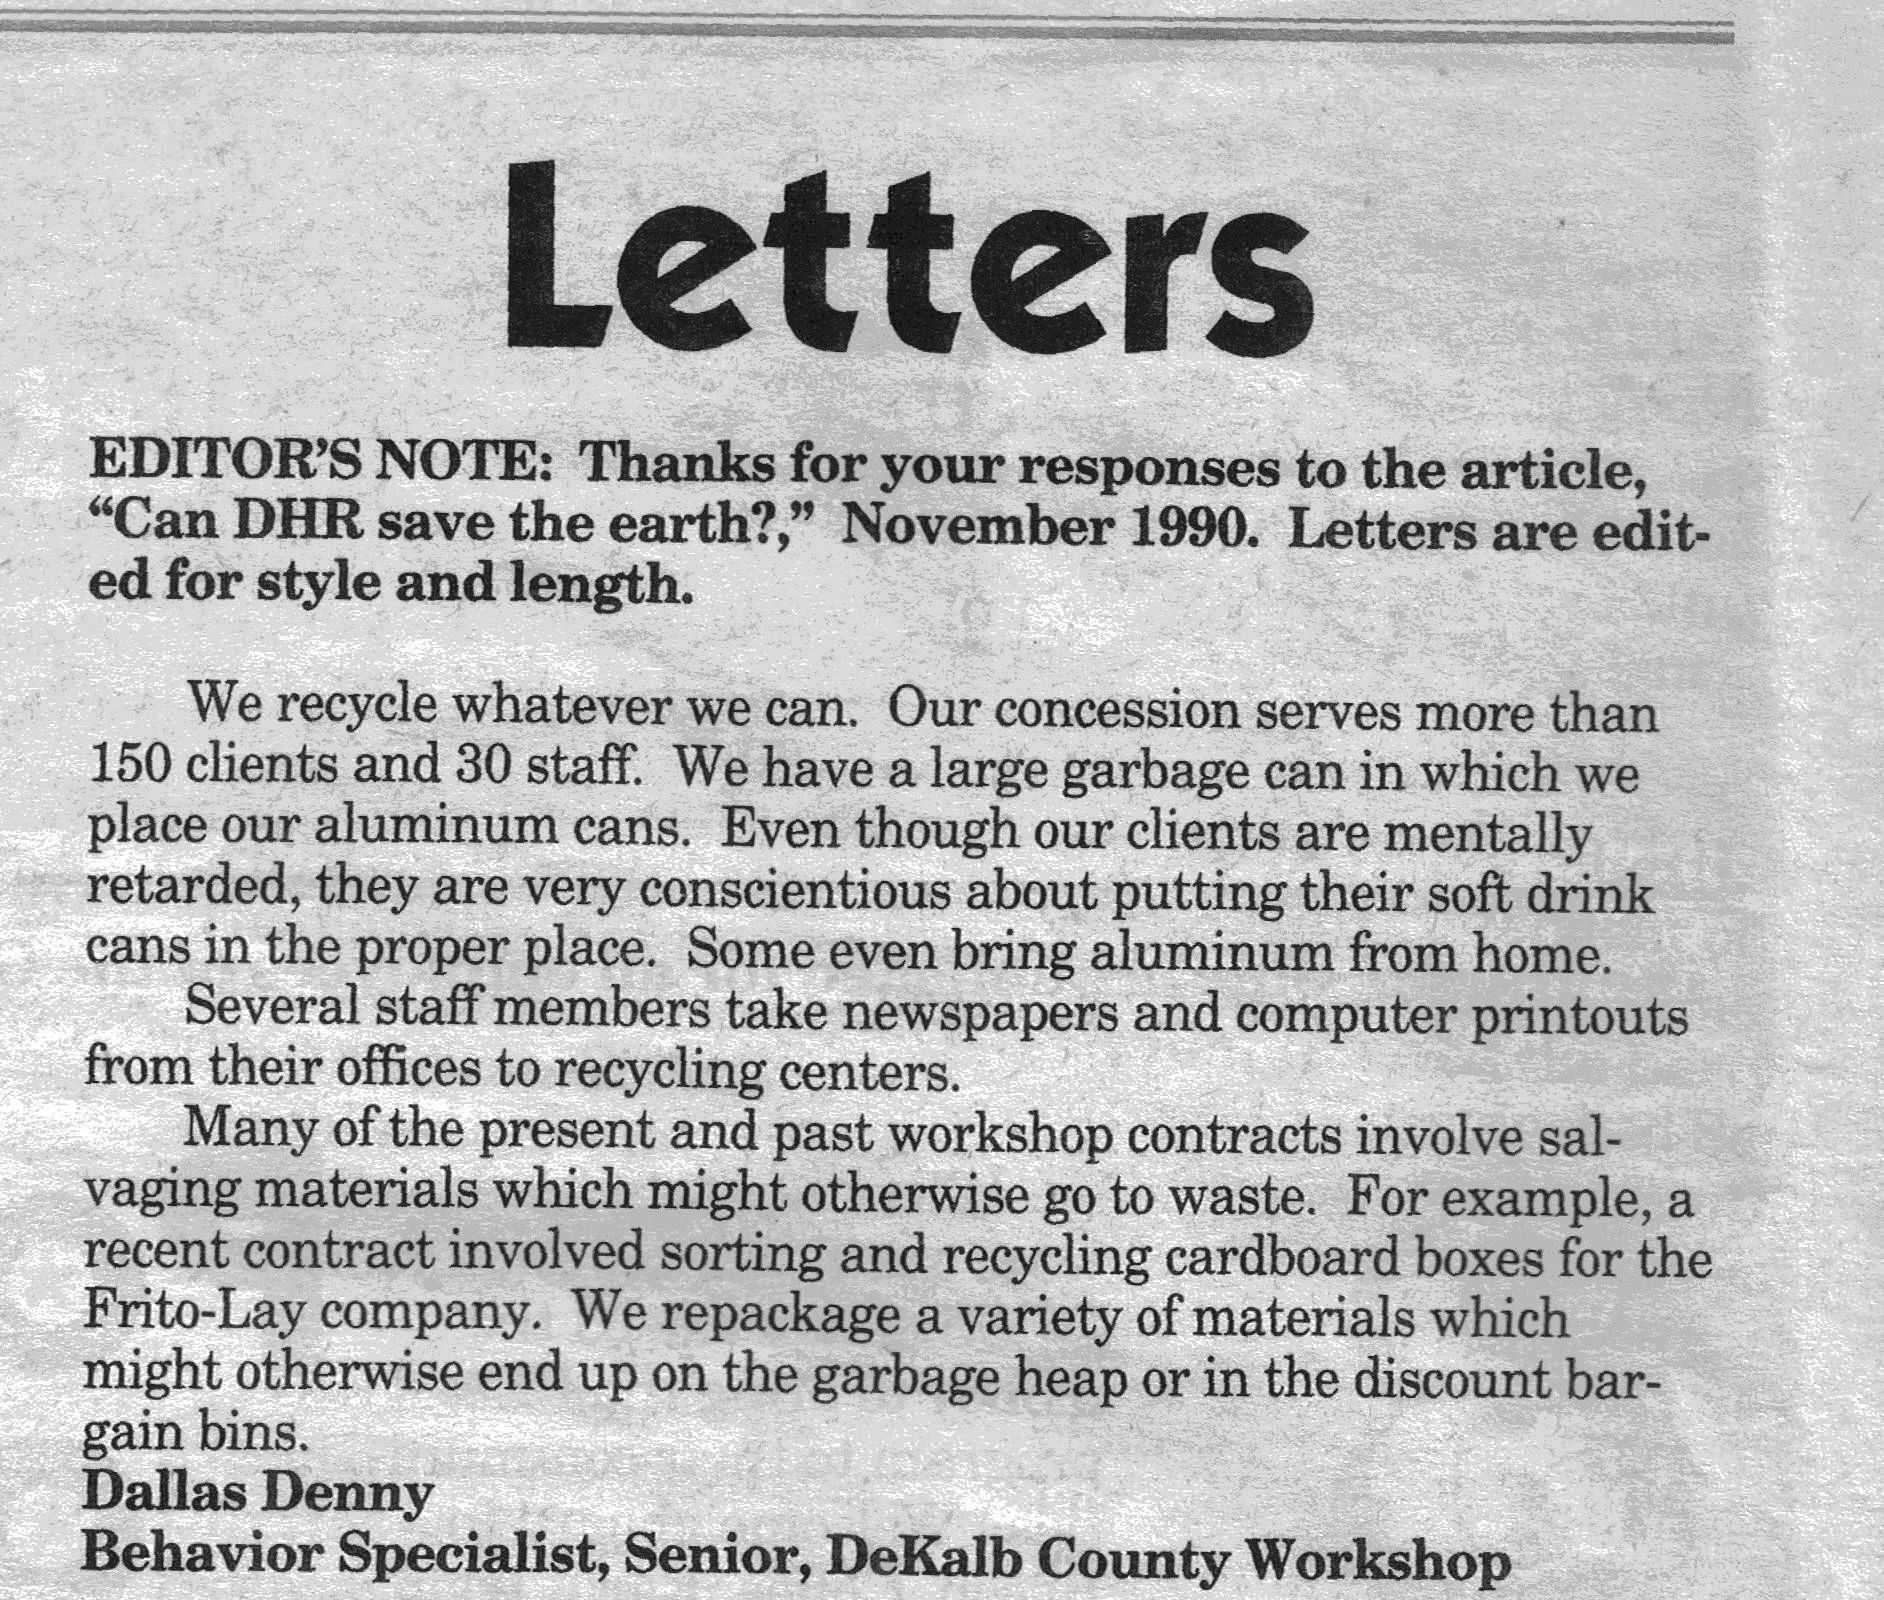 re letter to the editor essay Real estate  state-of-the-art smart home set in north yarmouth countryside  more headlines maine places to love: higgins beach  letter to the editor: shawn moody is driven only by self-interest.